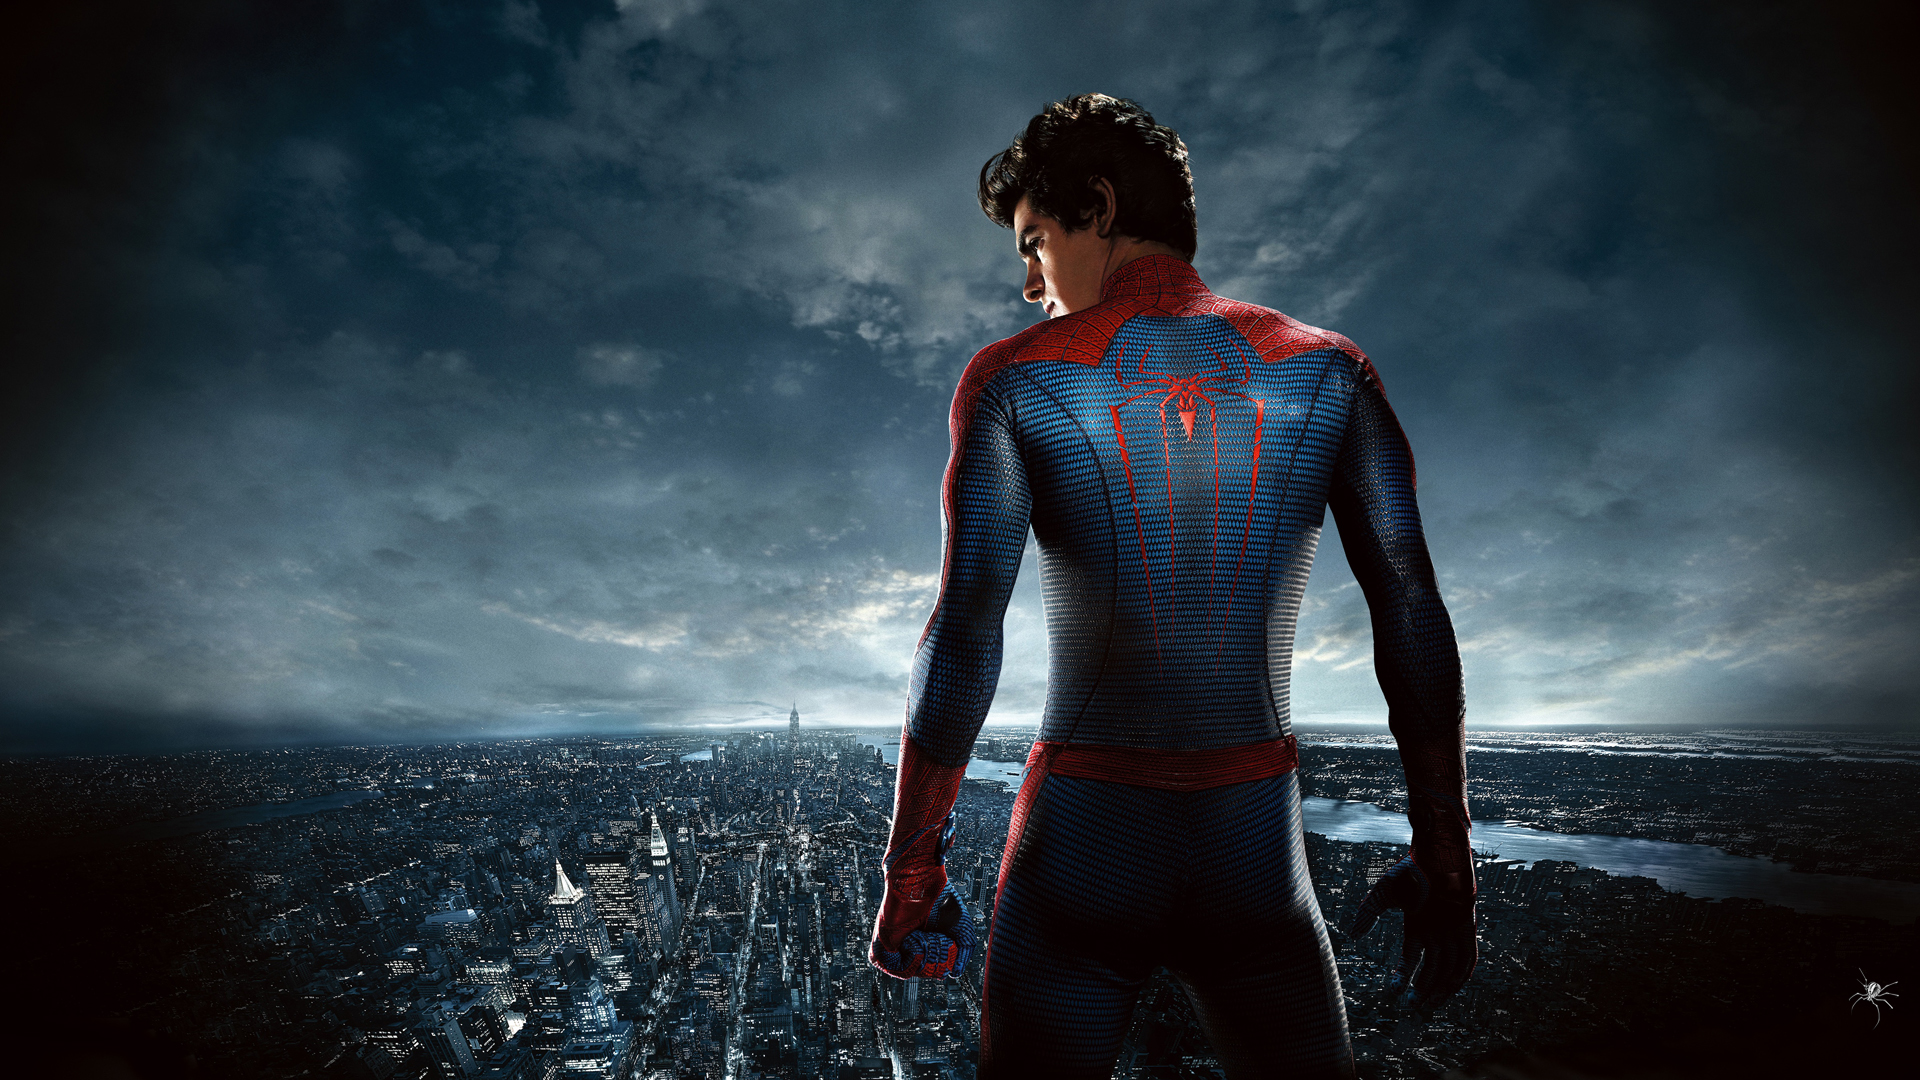 Andrew Garfield SpiderMan Wallpaper High Definition High